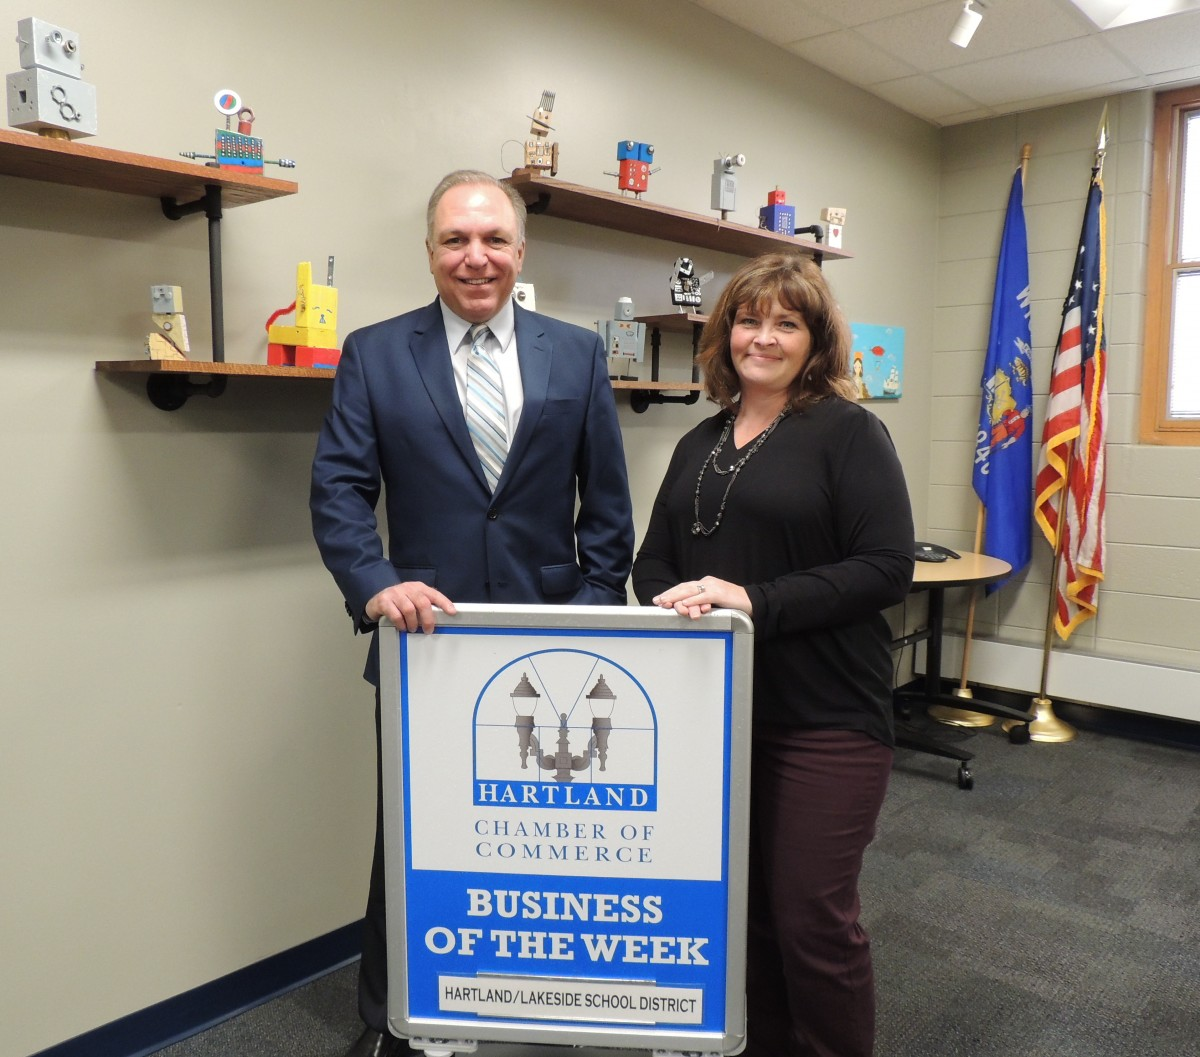 HARTLAND/LAKESIDE SCHOOL DISTRICT HARTLAND CHAMBER BUSINESS OF THE WEEK